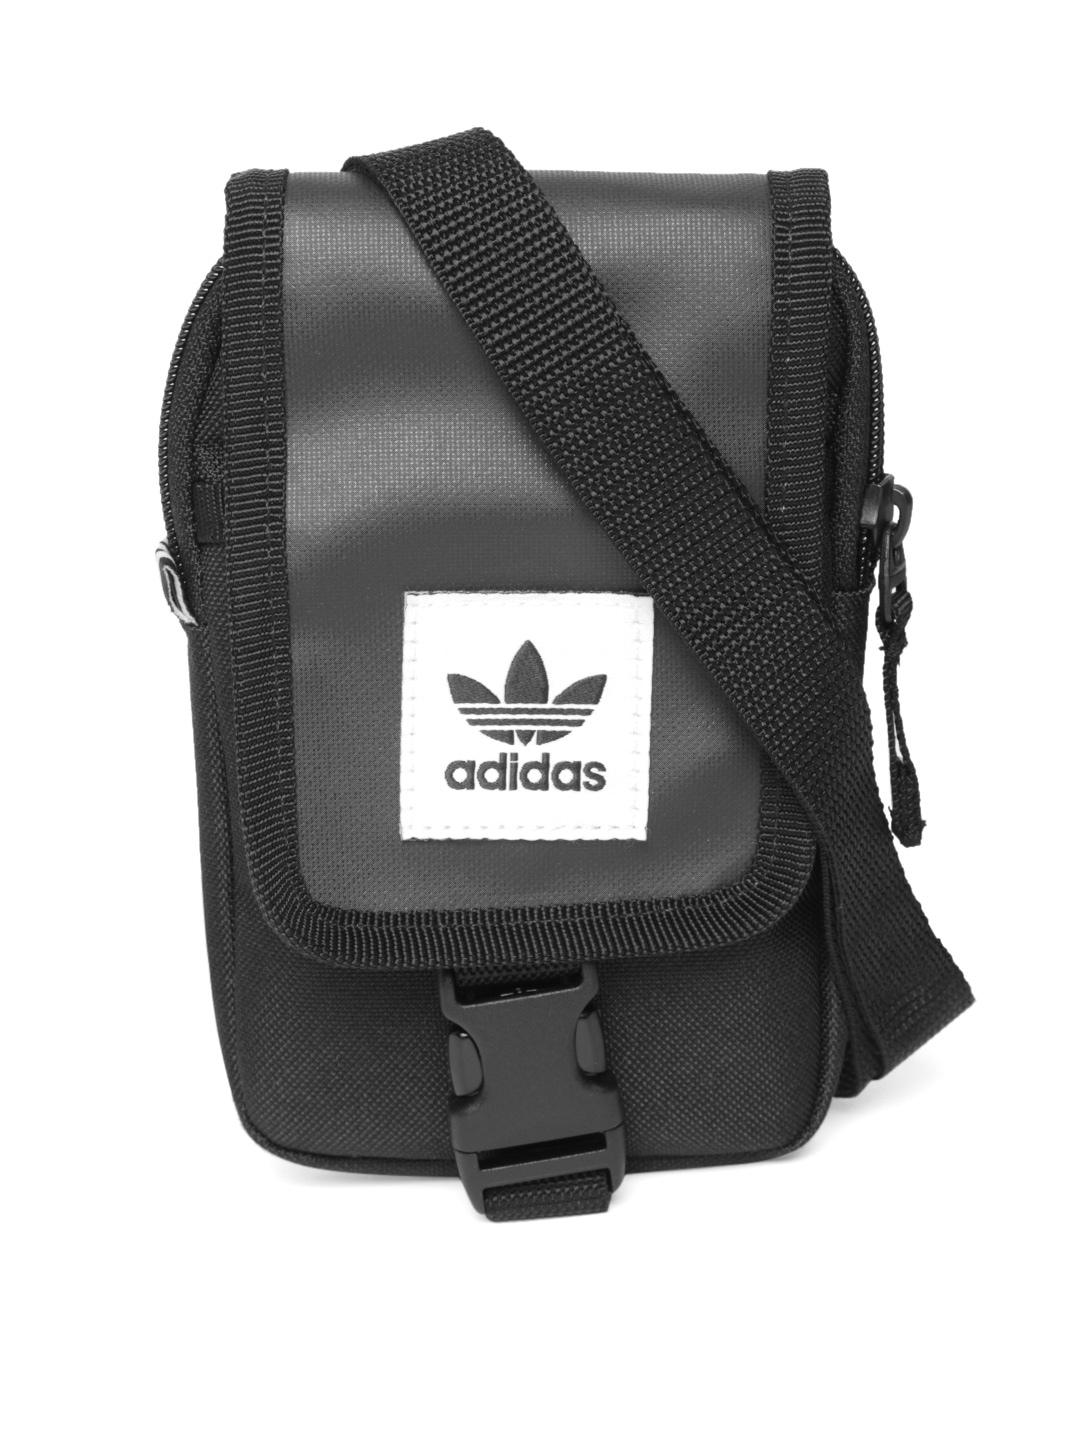 90d438193252 Accessories Adidas Men Bags Waist Pouch - Buy Accessories Adidas Men Bags  Waist Pouch online in India